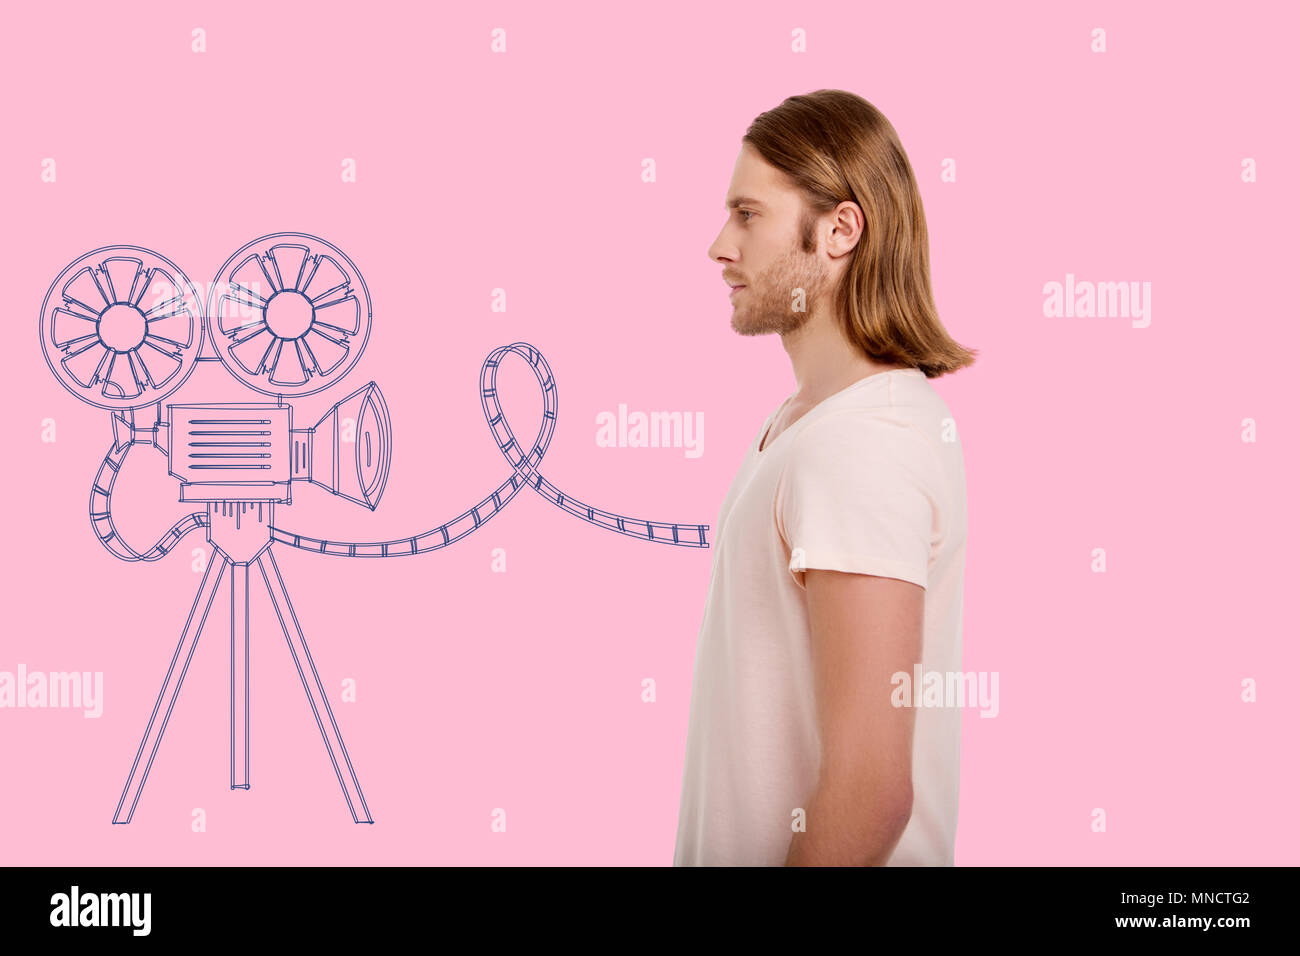 Profile of good looking man being keen on cinematography - Stock Image